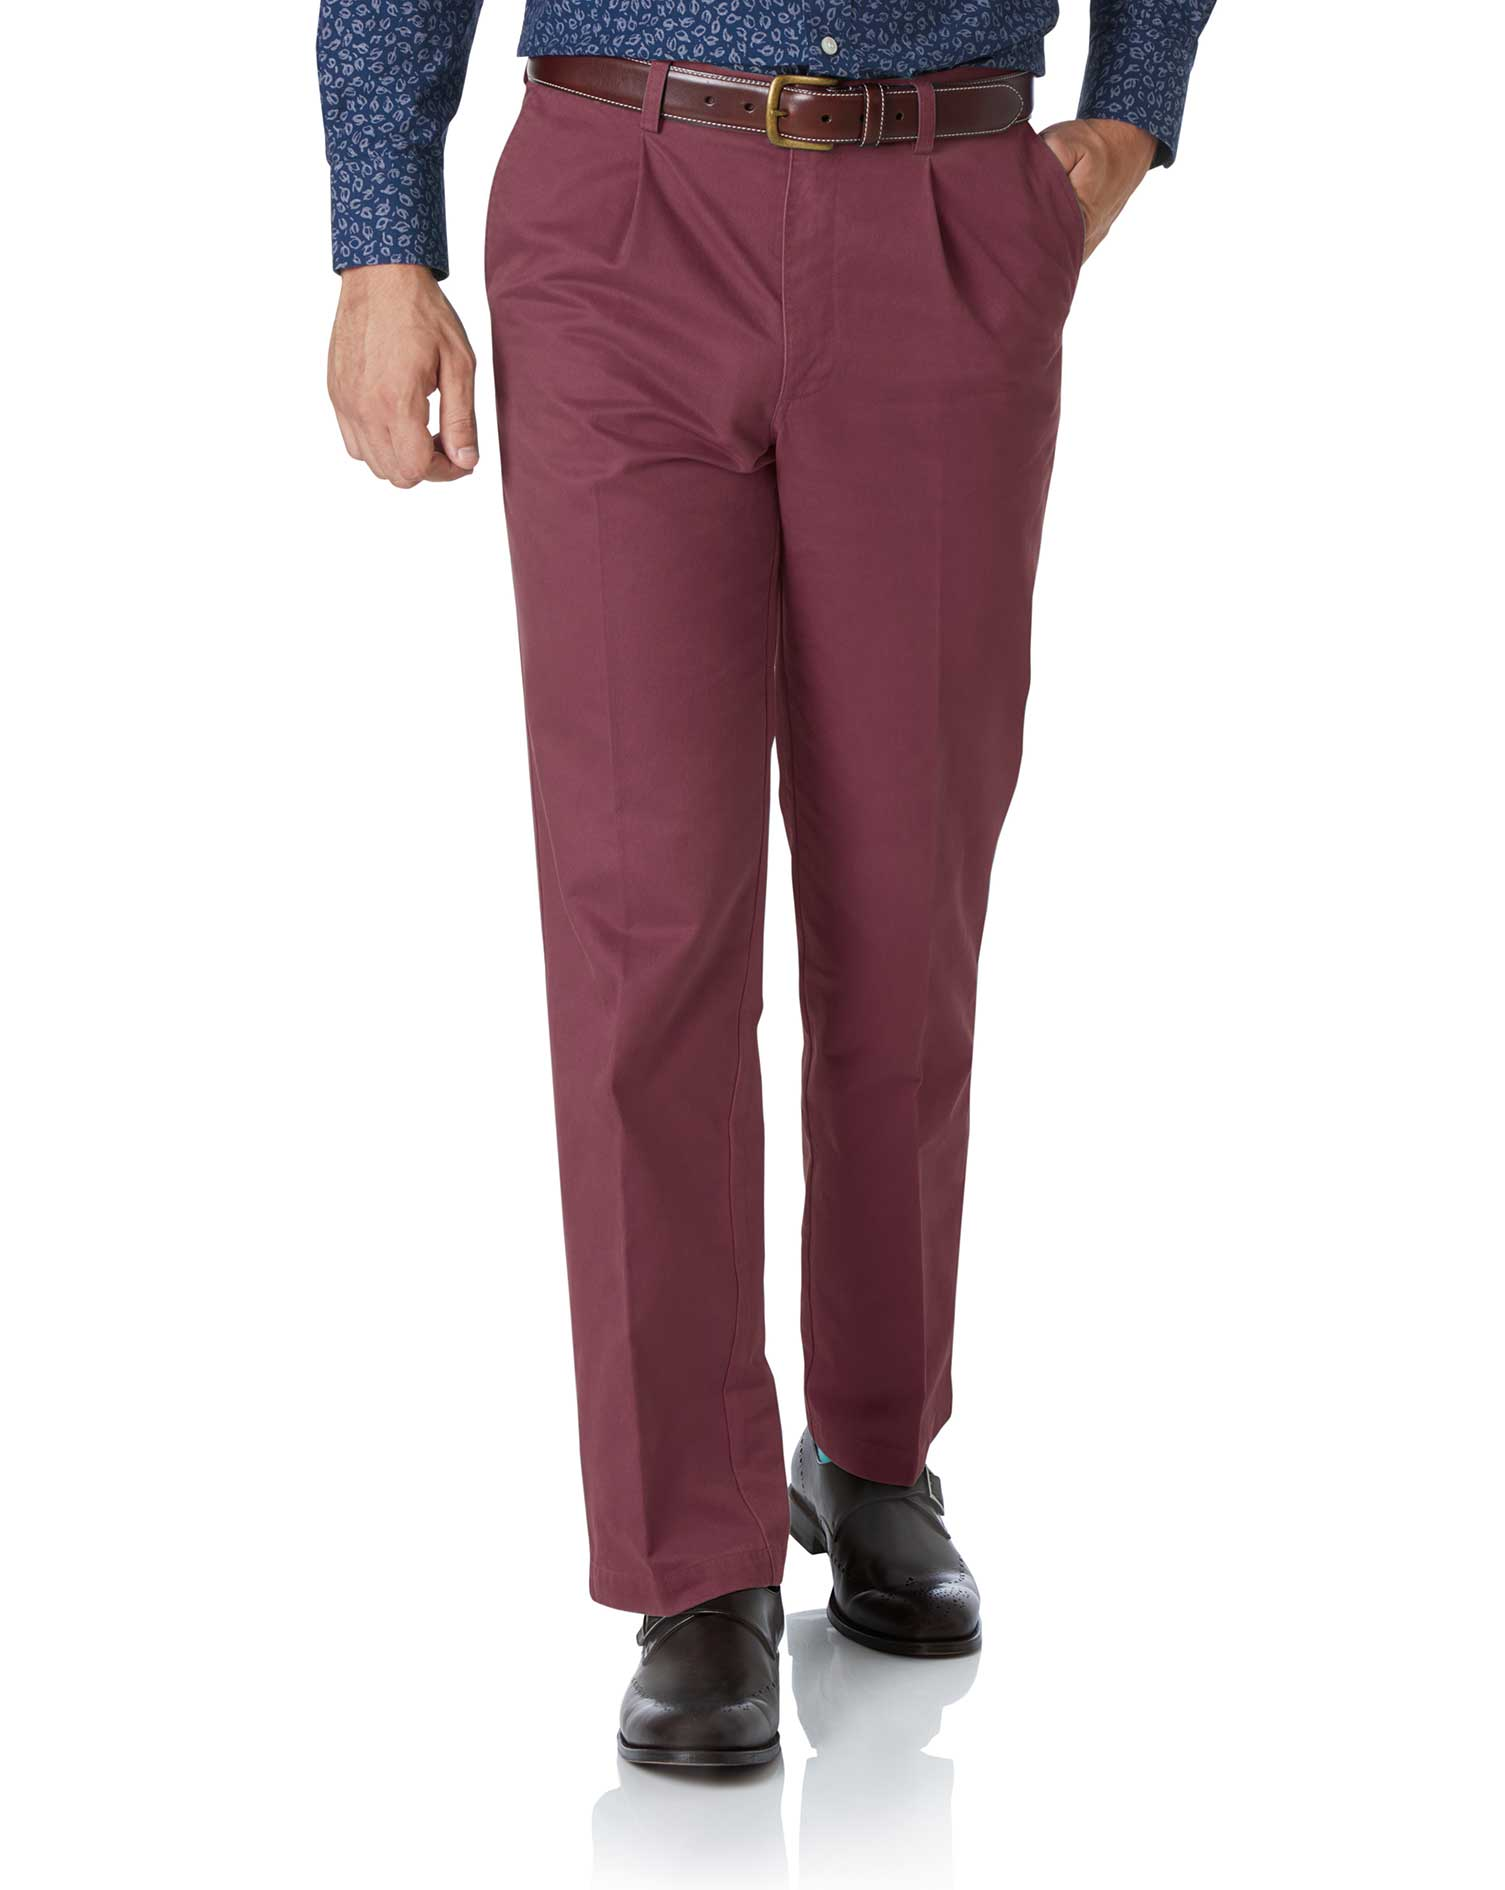 Dark Pink Classic Fit Single Pleat Washed Cotton Chino Trousers Size W36 L29 by Charles Tyrwhitt from Charles Tyrwhitt